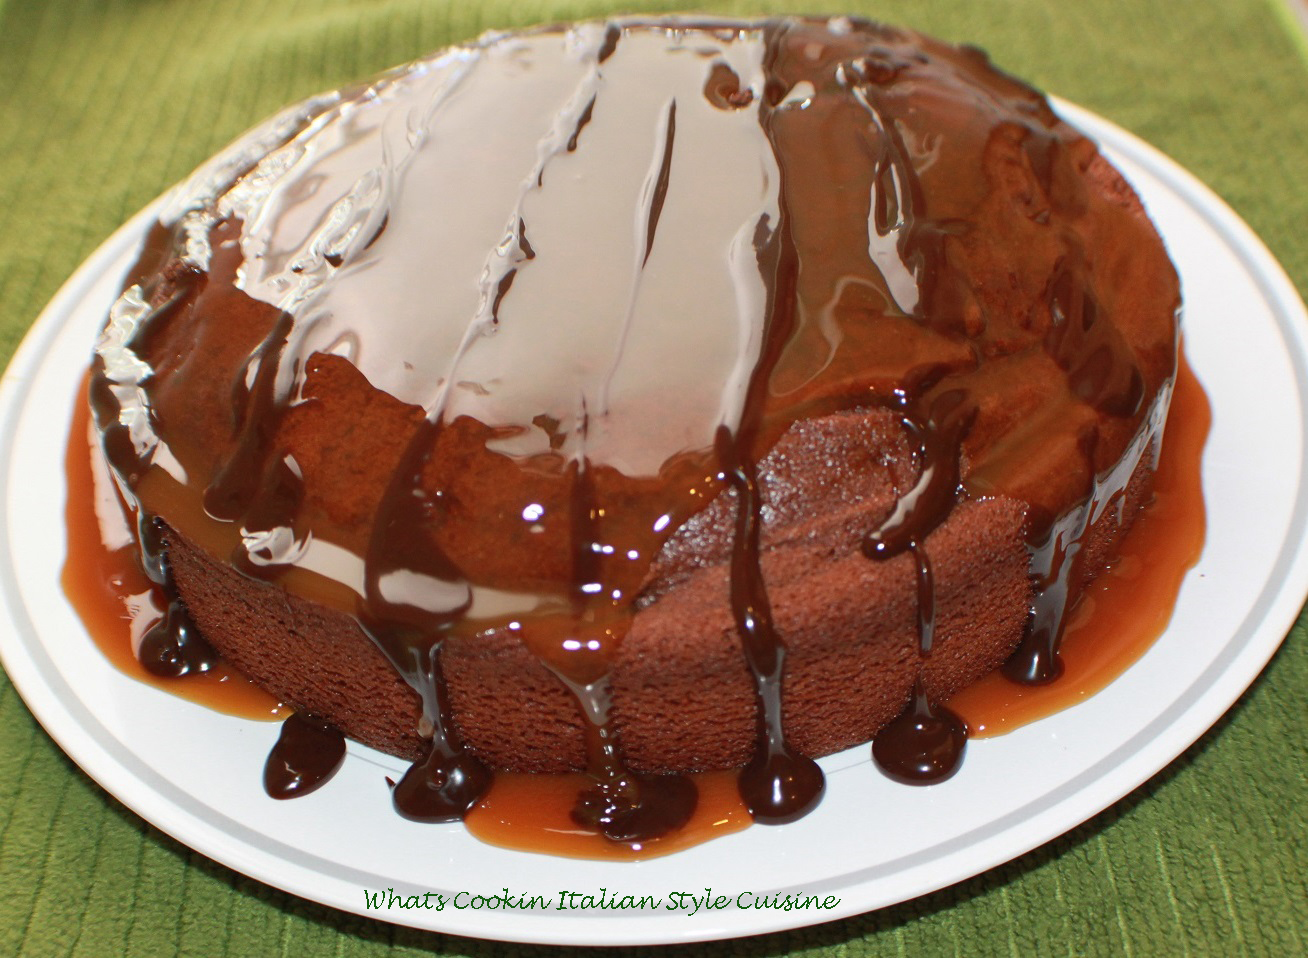 What's Cookin' Italian Style Cuisine: Sour Milk Chocolate Cake Recipe